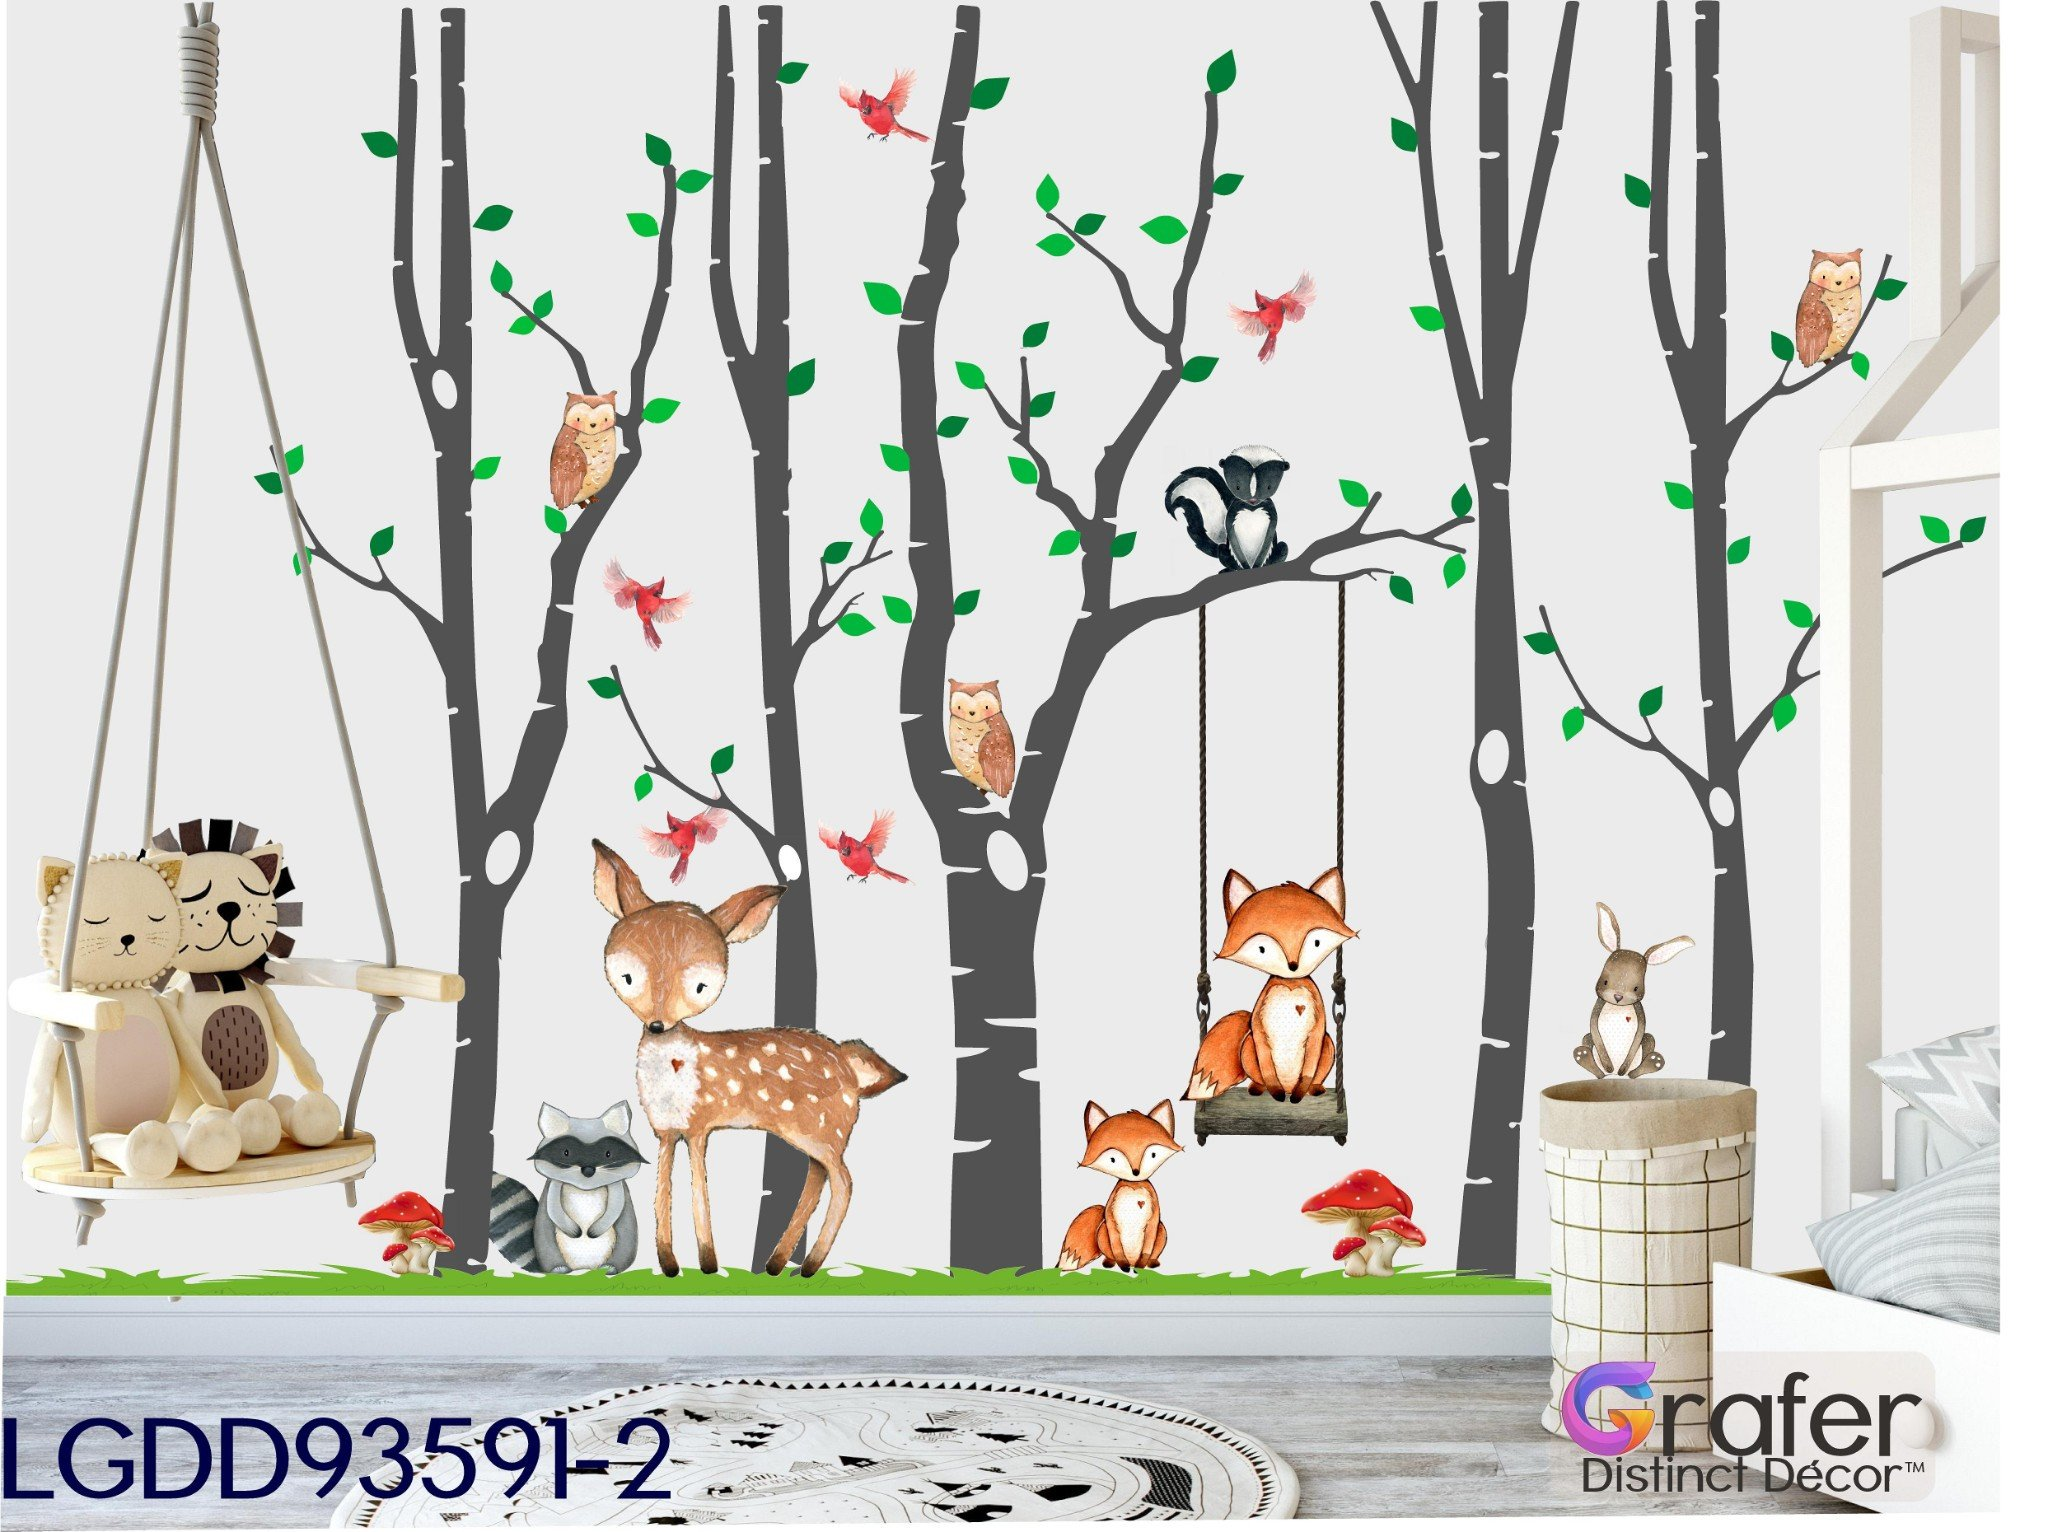 Childrens Bedroom Wall Stickers Removable Elegant Woodland Nursery Wall Decal Safari Nursery Decor